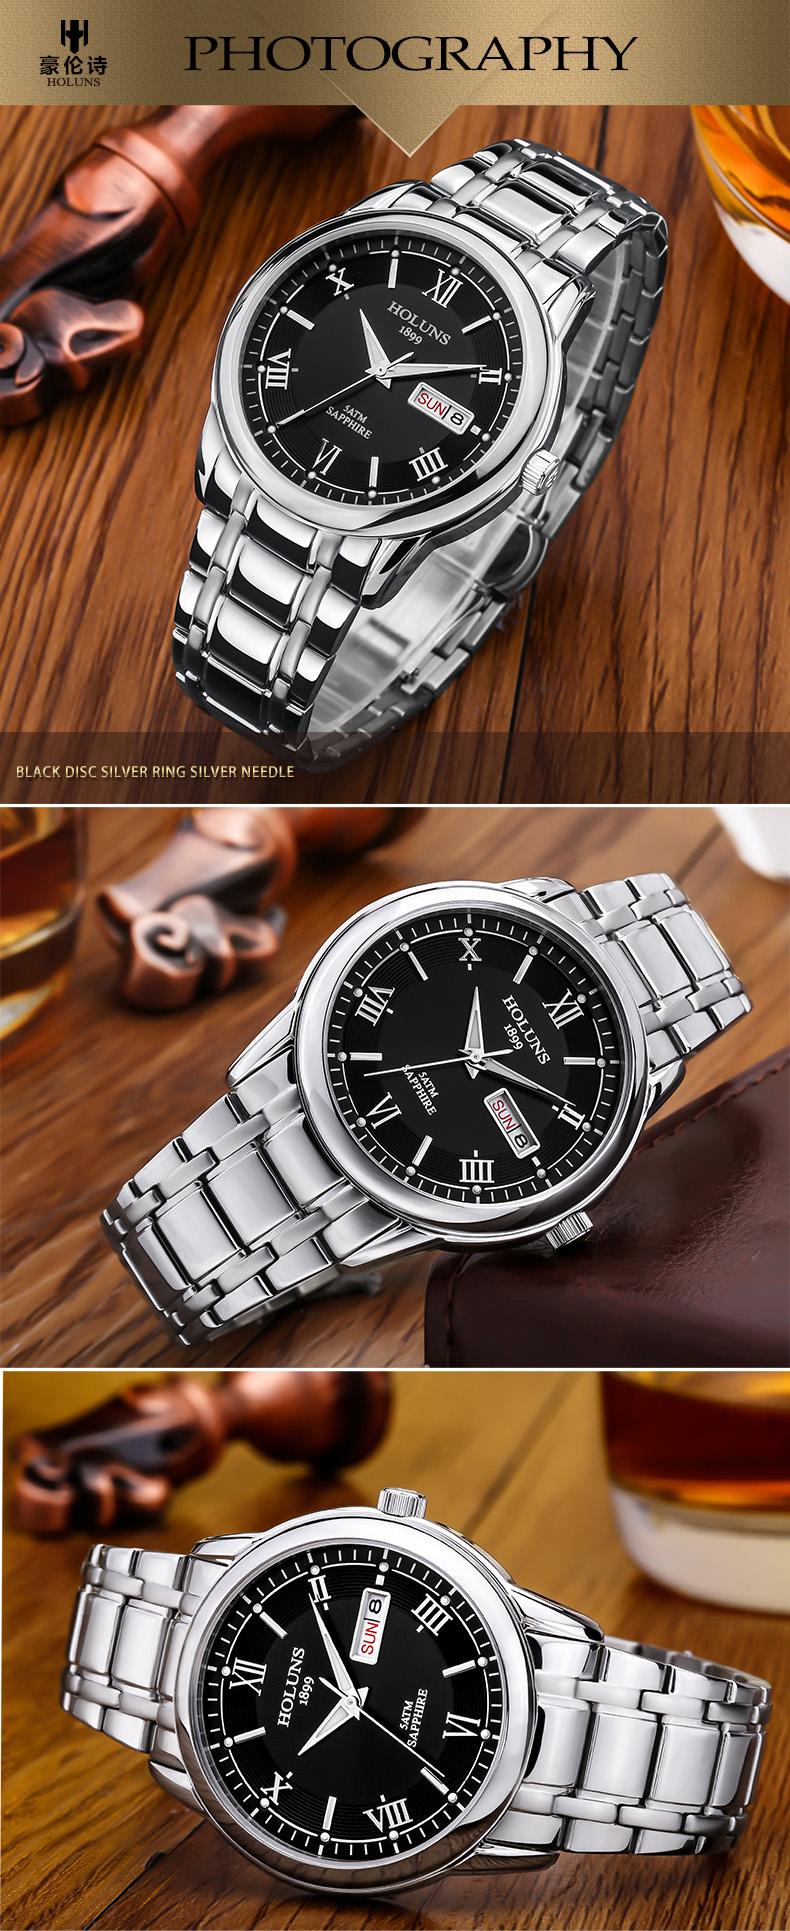 HTB1Dw2GcgmH3KVjSZKzq6z2OXXar HOLUNS relogio masculino full stainless steel men automatic watch top brand luxury 5ATM waterproof Super luminous dropshipping